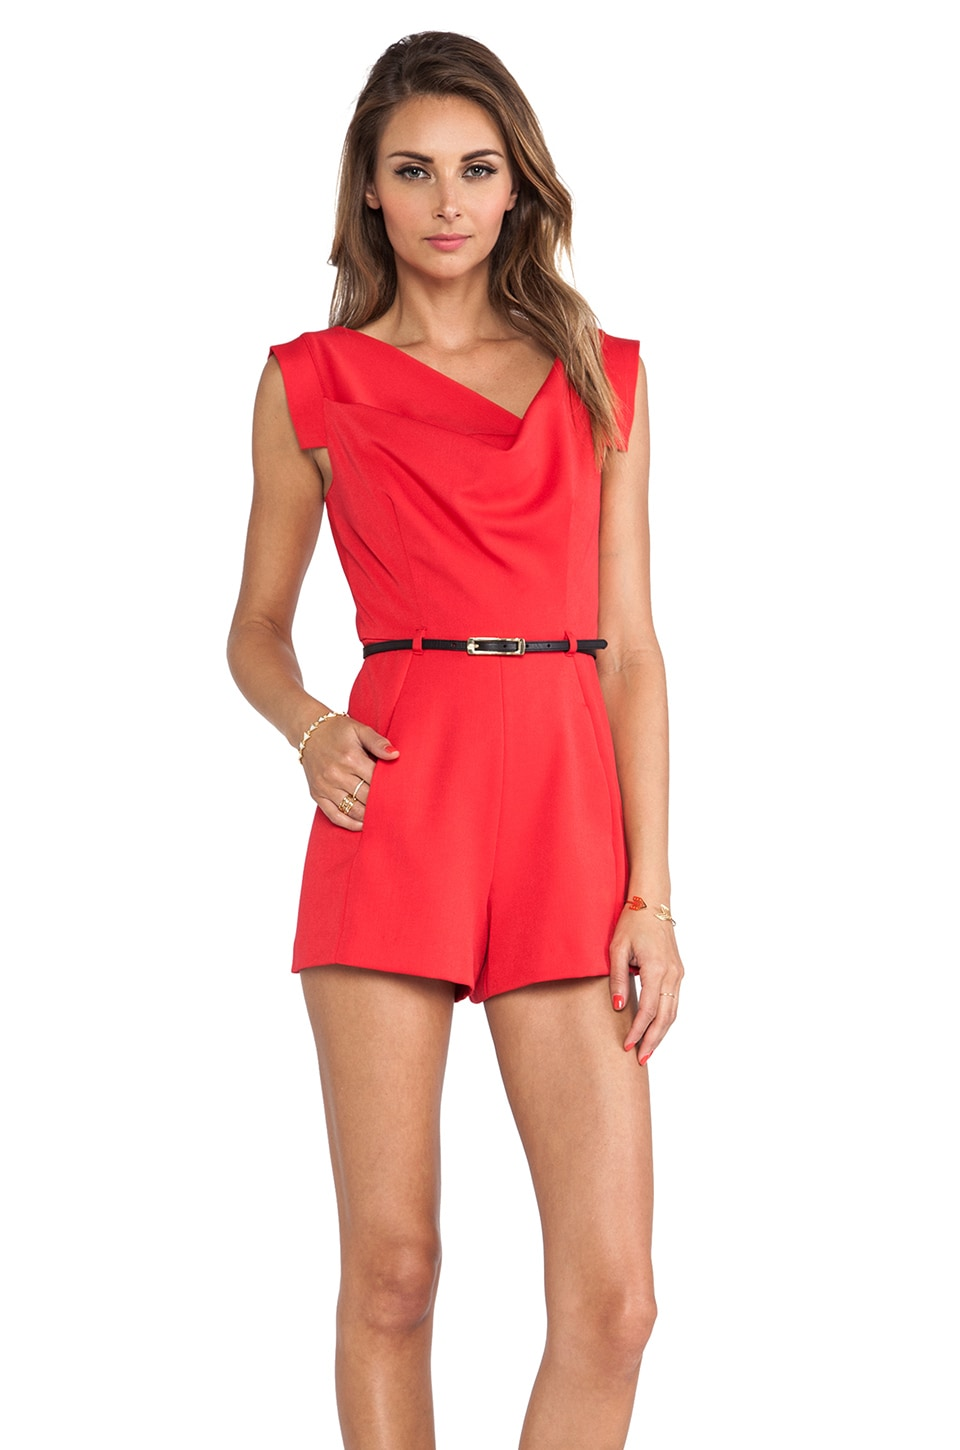 Black Halo X REVOLVE Jackie O Romper in Hibiscus Red